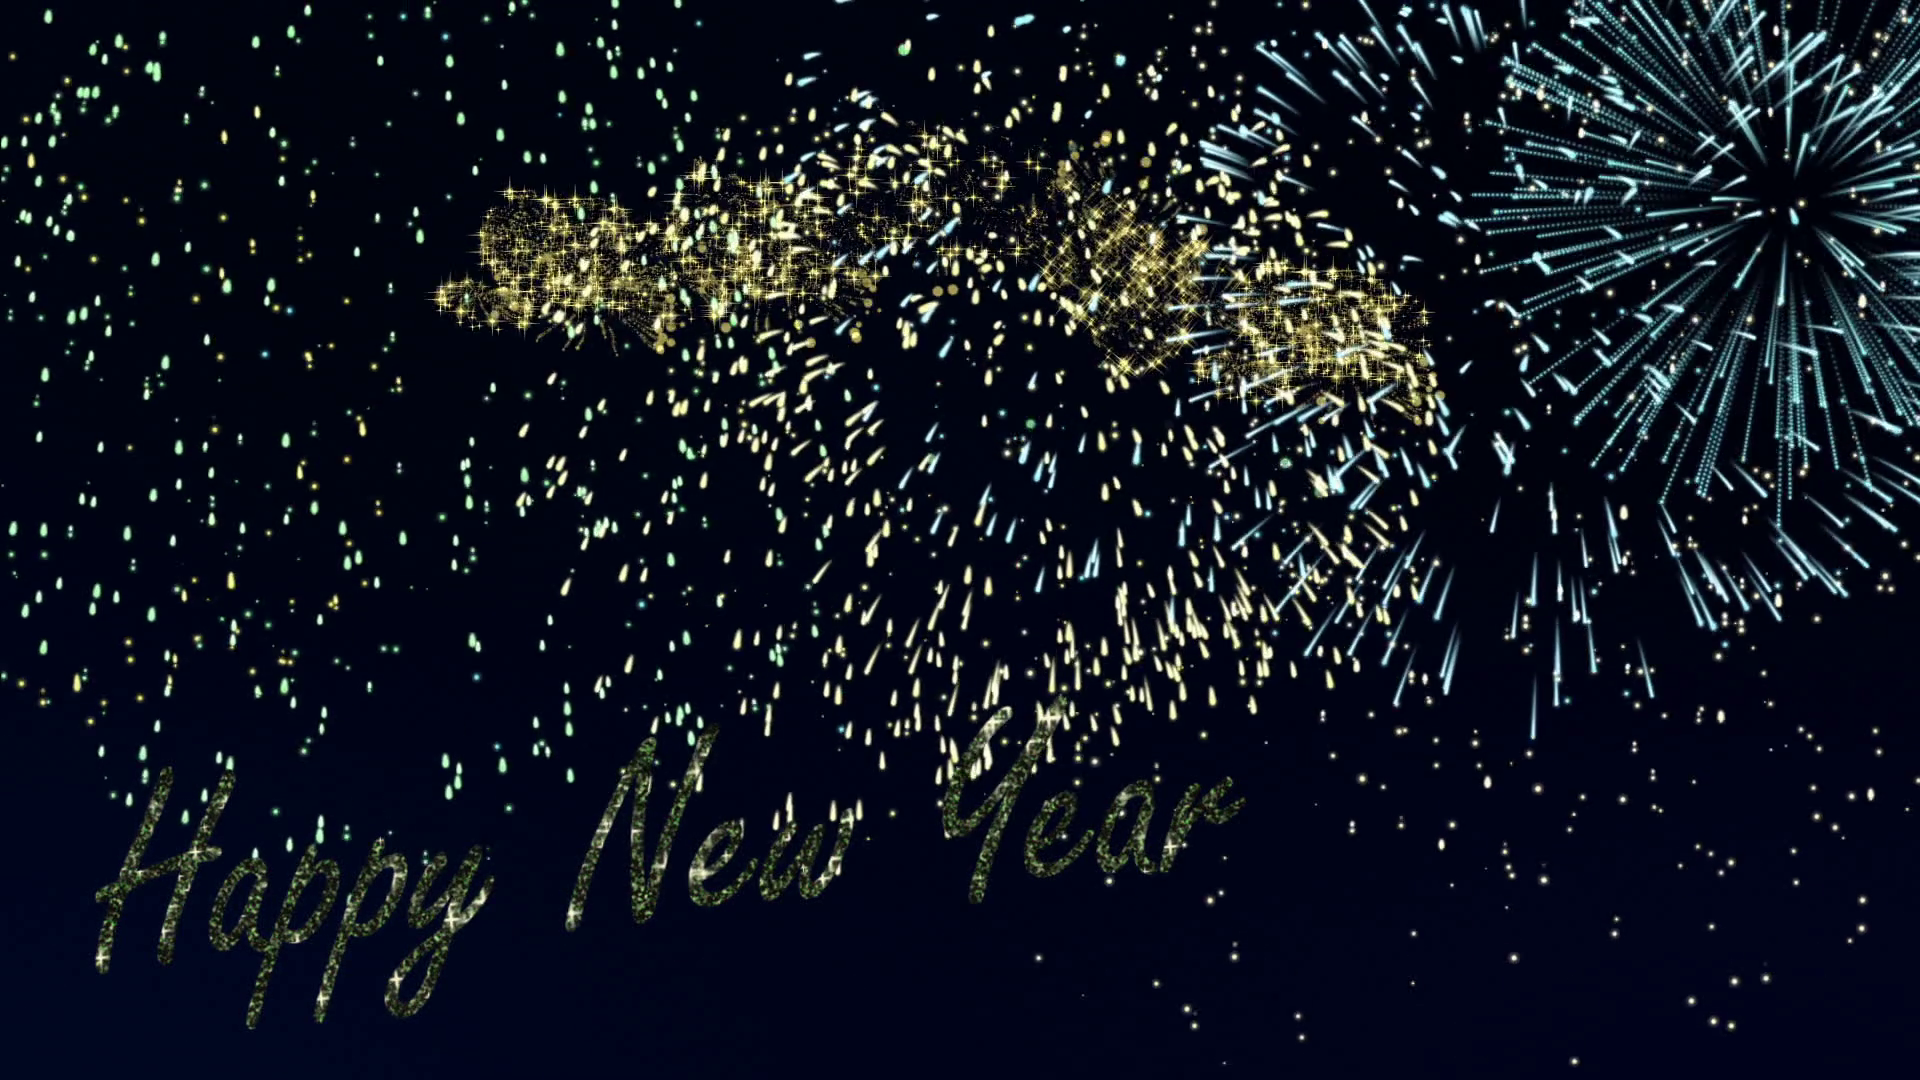 Animated Png Fireworks & Free Animated Fireworks.png Transparent.